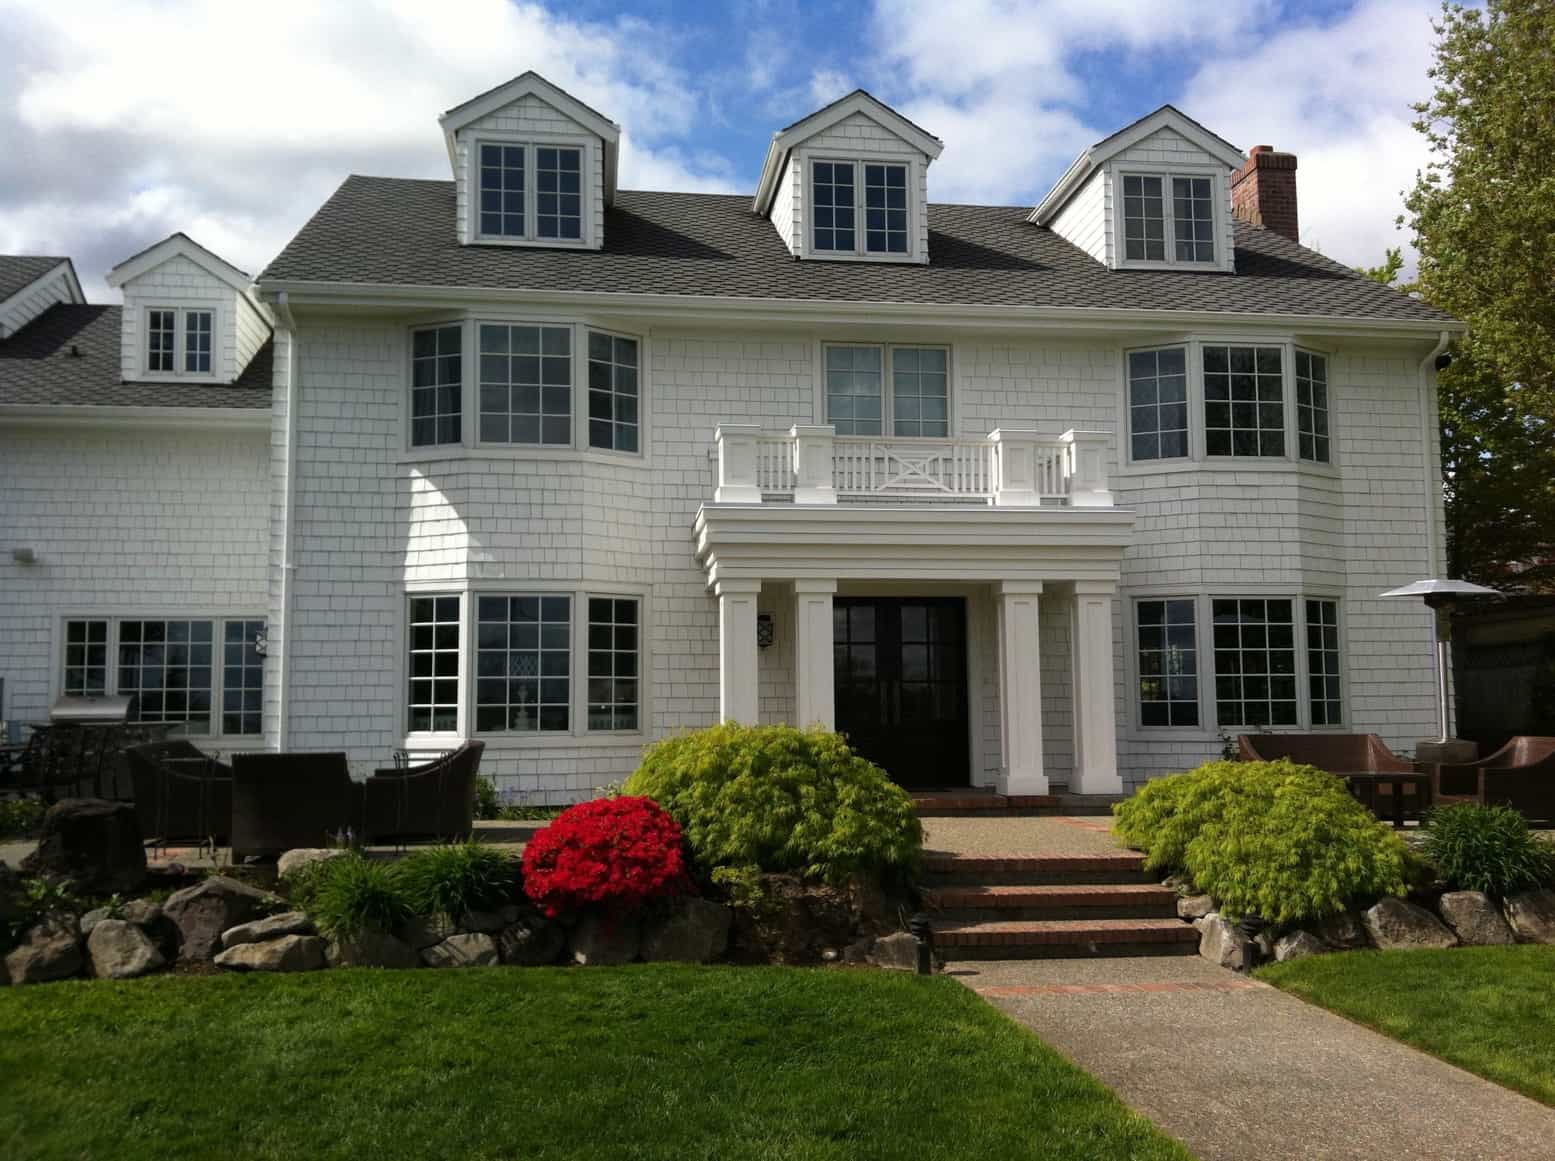 Featured Image of White Two Story Colonial Home With Classic Square Pillars